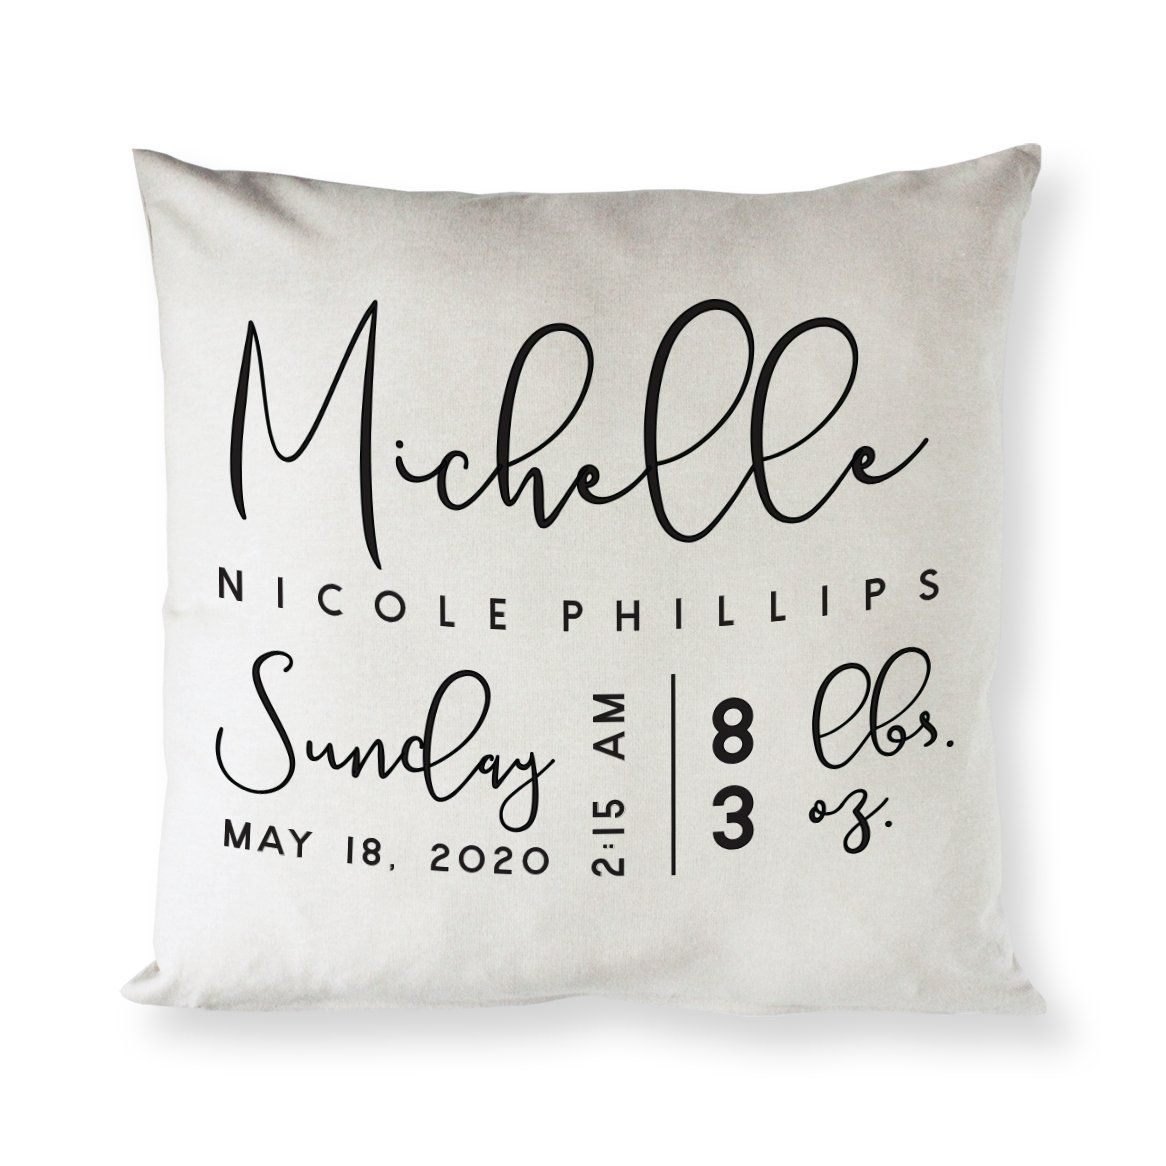 Personalized Newborn Baby Pillow Cover Personalized New Born Baby Pillow Cover Baby Cover New Newborn Baby Pillow Baby Pillows Personalized Pillow Cases